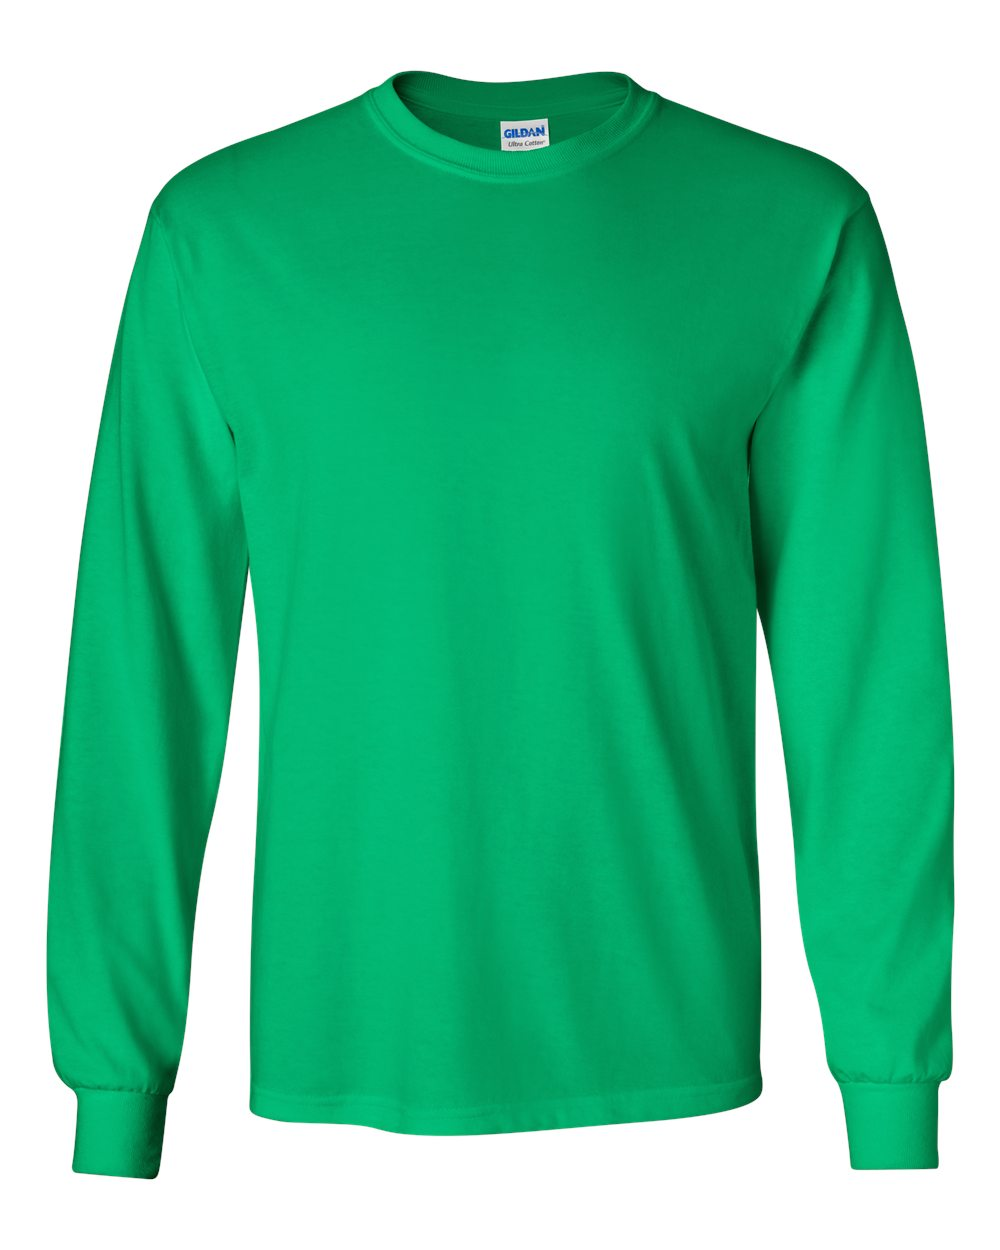 Gildan_2400_Irish_Green_Front_High.jpg